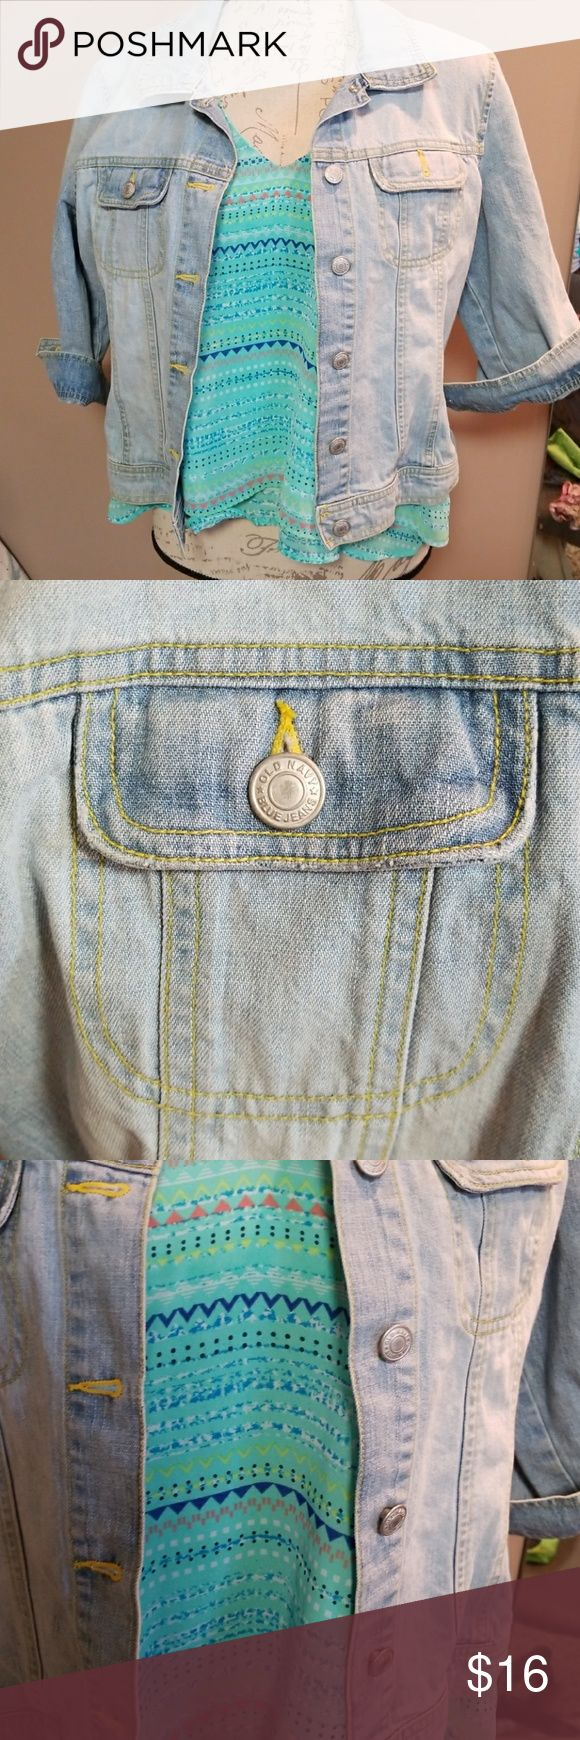 Old Navy jean jacket with FREE tank top! Great jean jacket by Old Navy. Sleeves are 3/4 and would look great rolled up or buttoned. Jacket is in excellent condition. I am including a free XL tank top by Candies because they look so darn cute together! Old Navy Jackets & Coats Jean Jackets